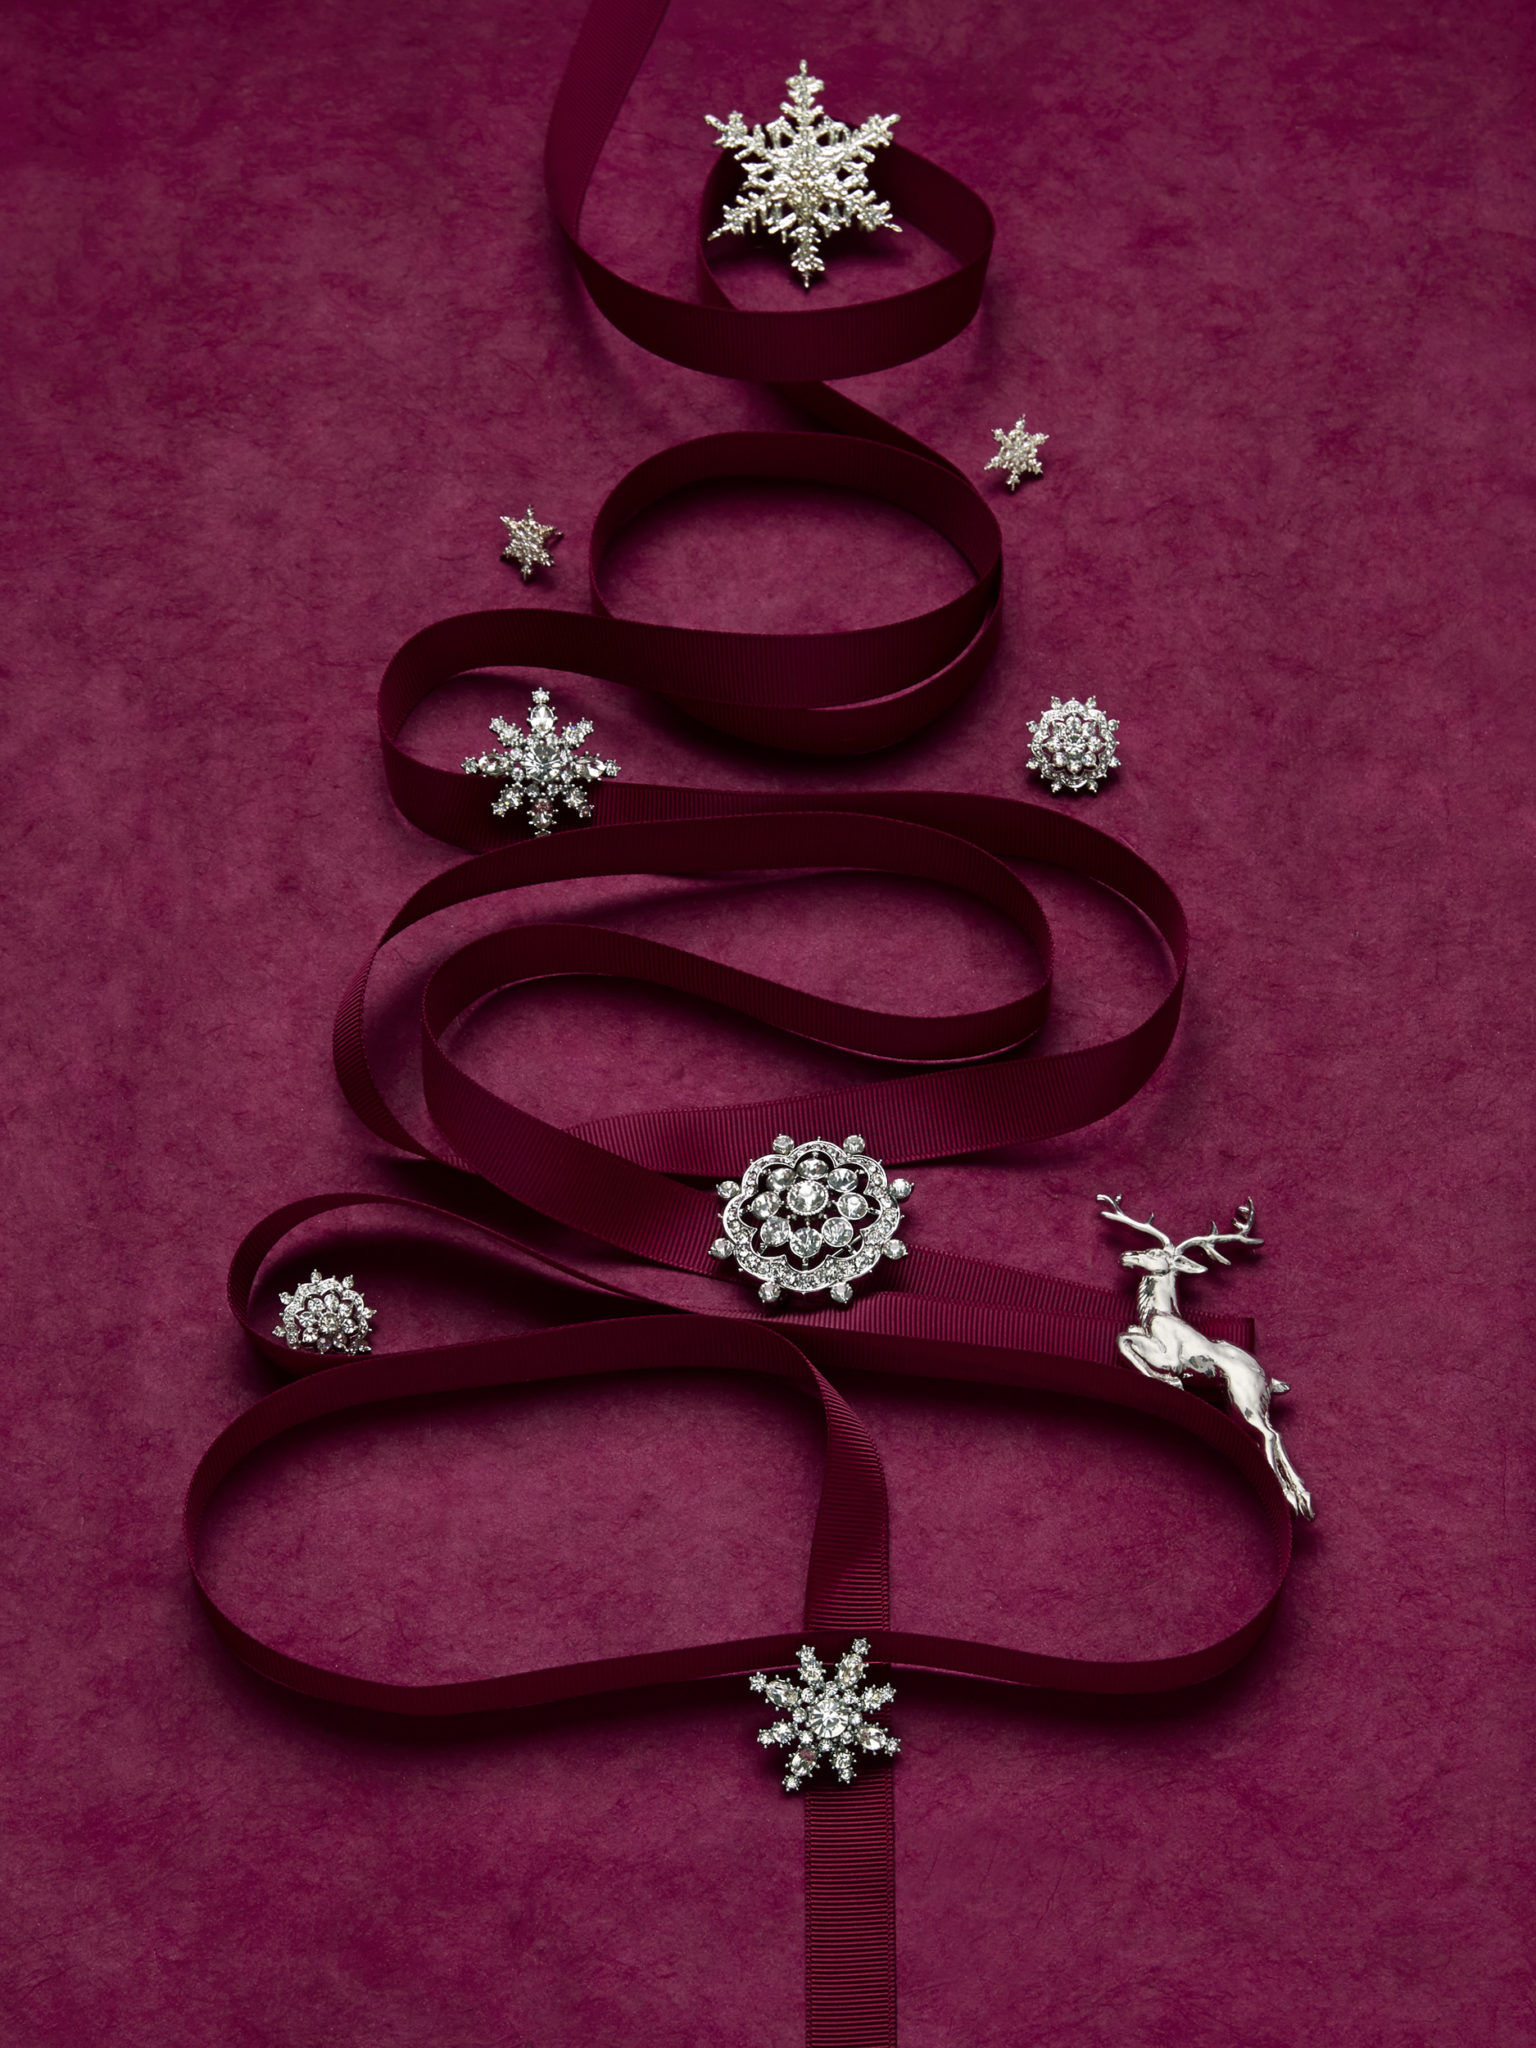 marketing still life photograph of silver and diamond jewelry including pins and earrings decorating a tree made of burgundy ribbon on a burgundy background